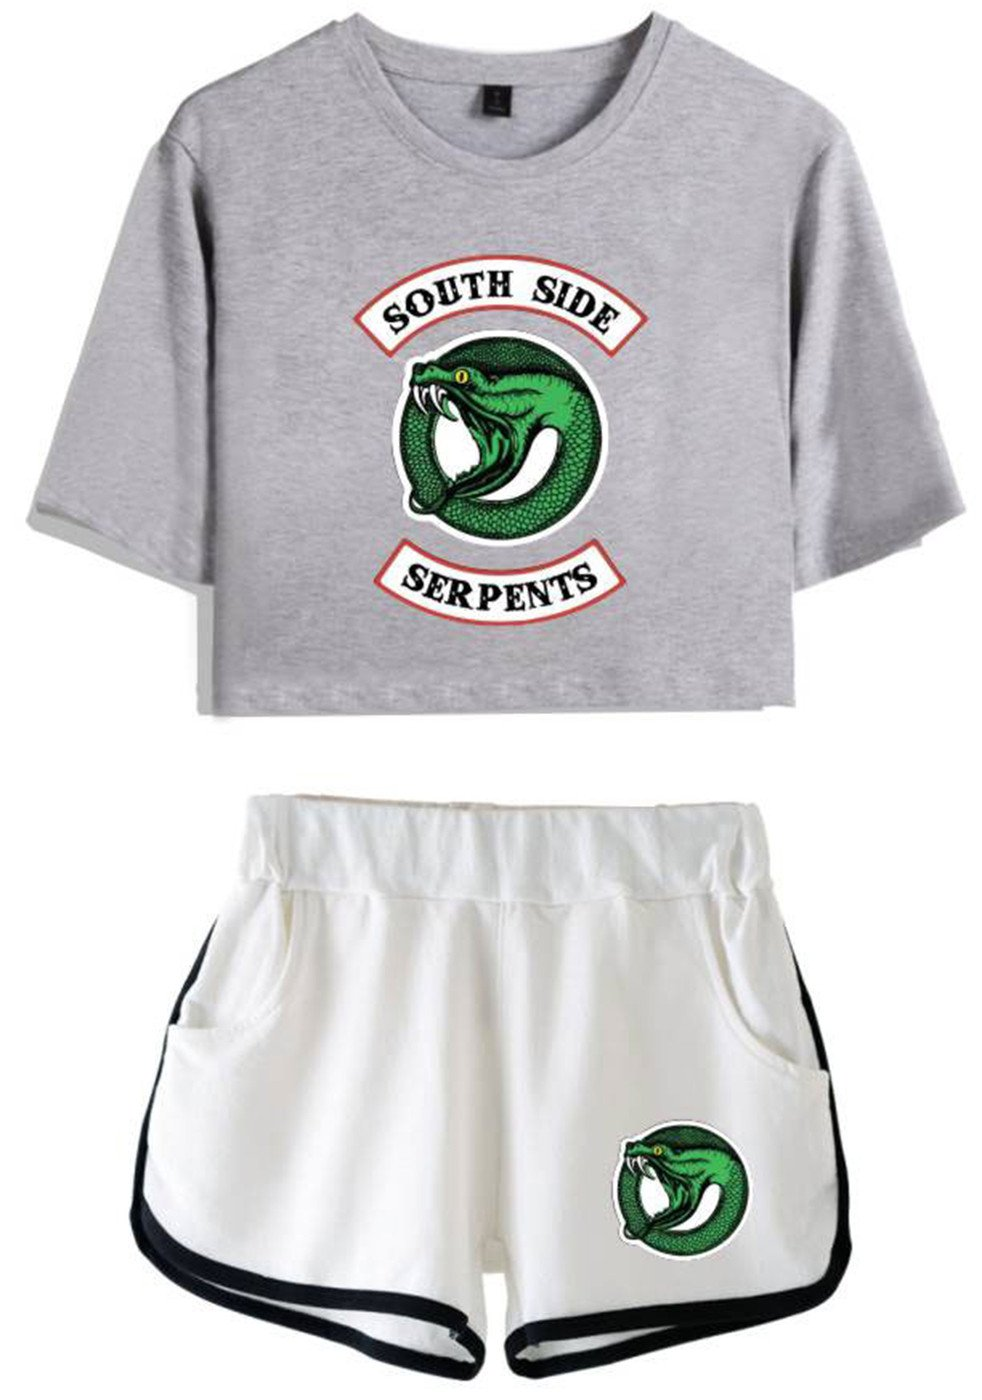 SERAPHY Riverdale Crop Top T-Shirts and Shorts Suit for Girls and Women 4890 Grey-White L